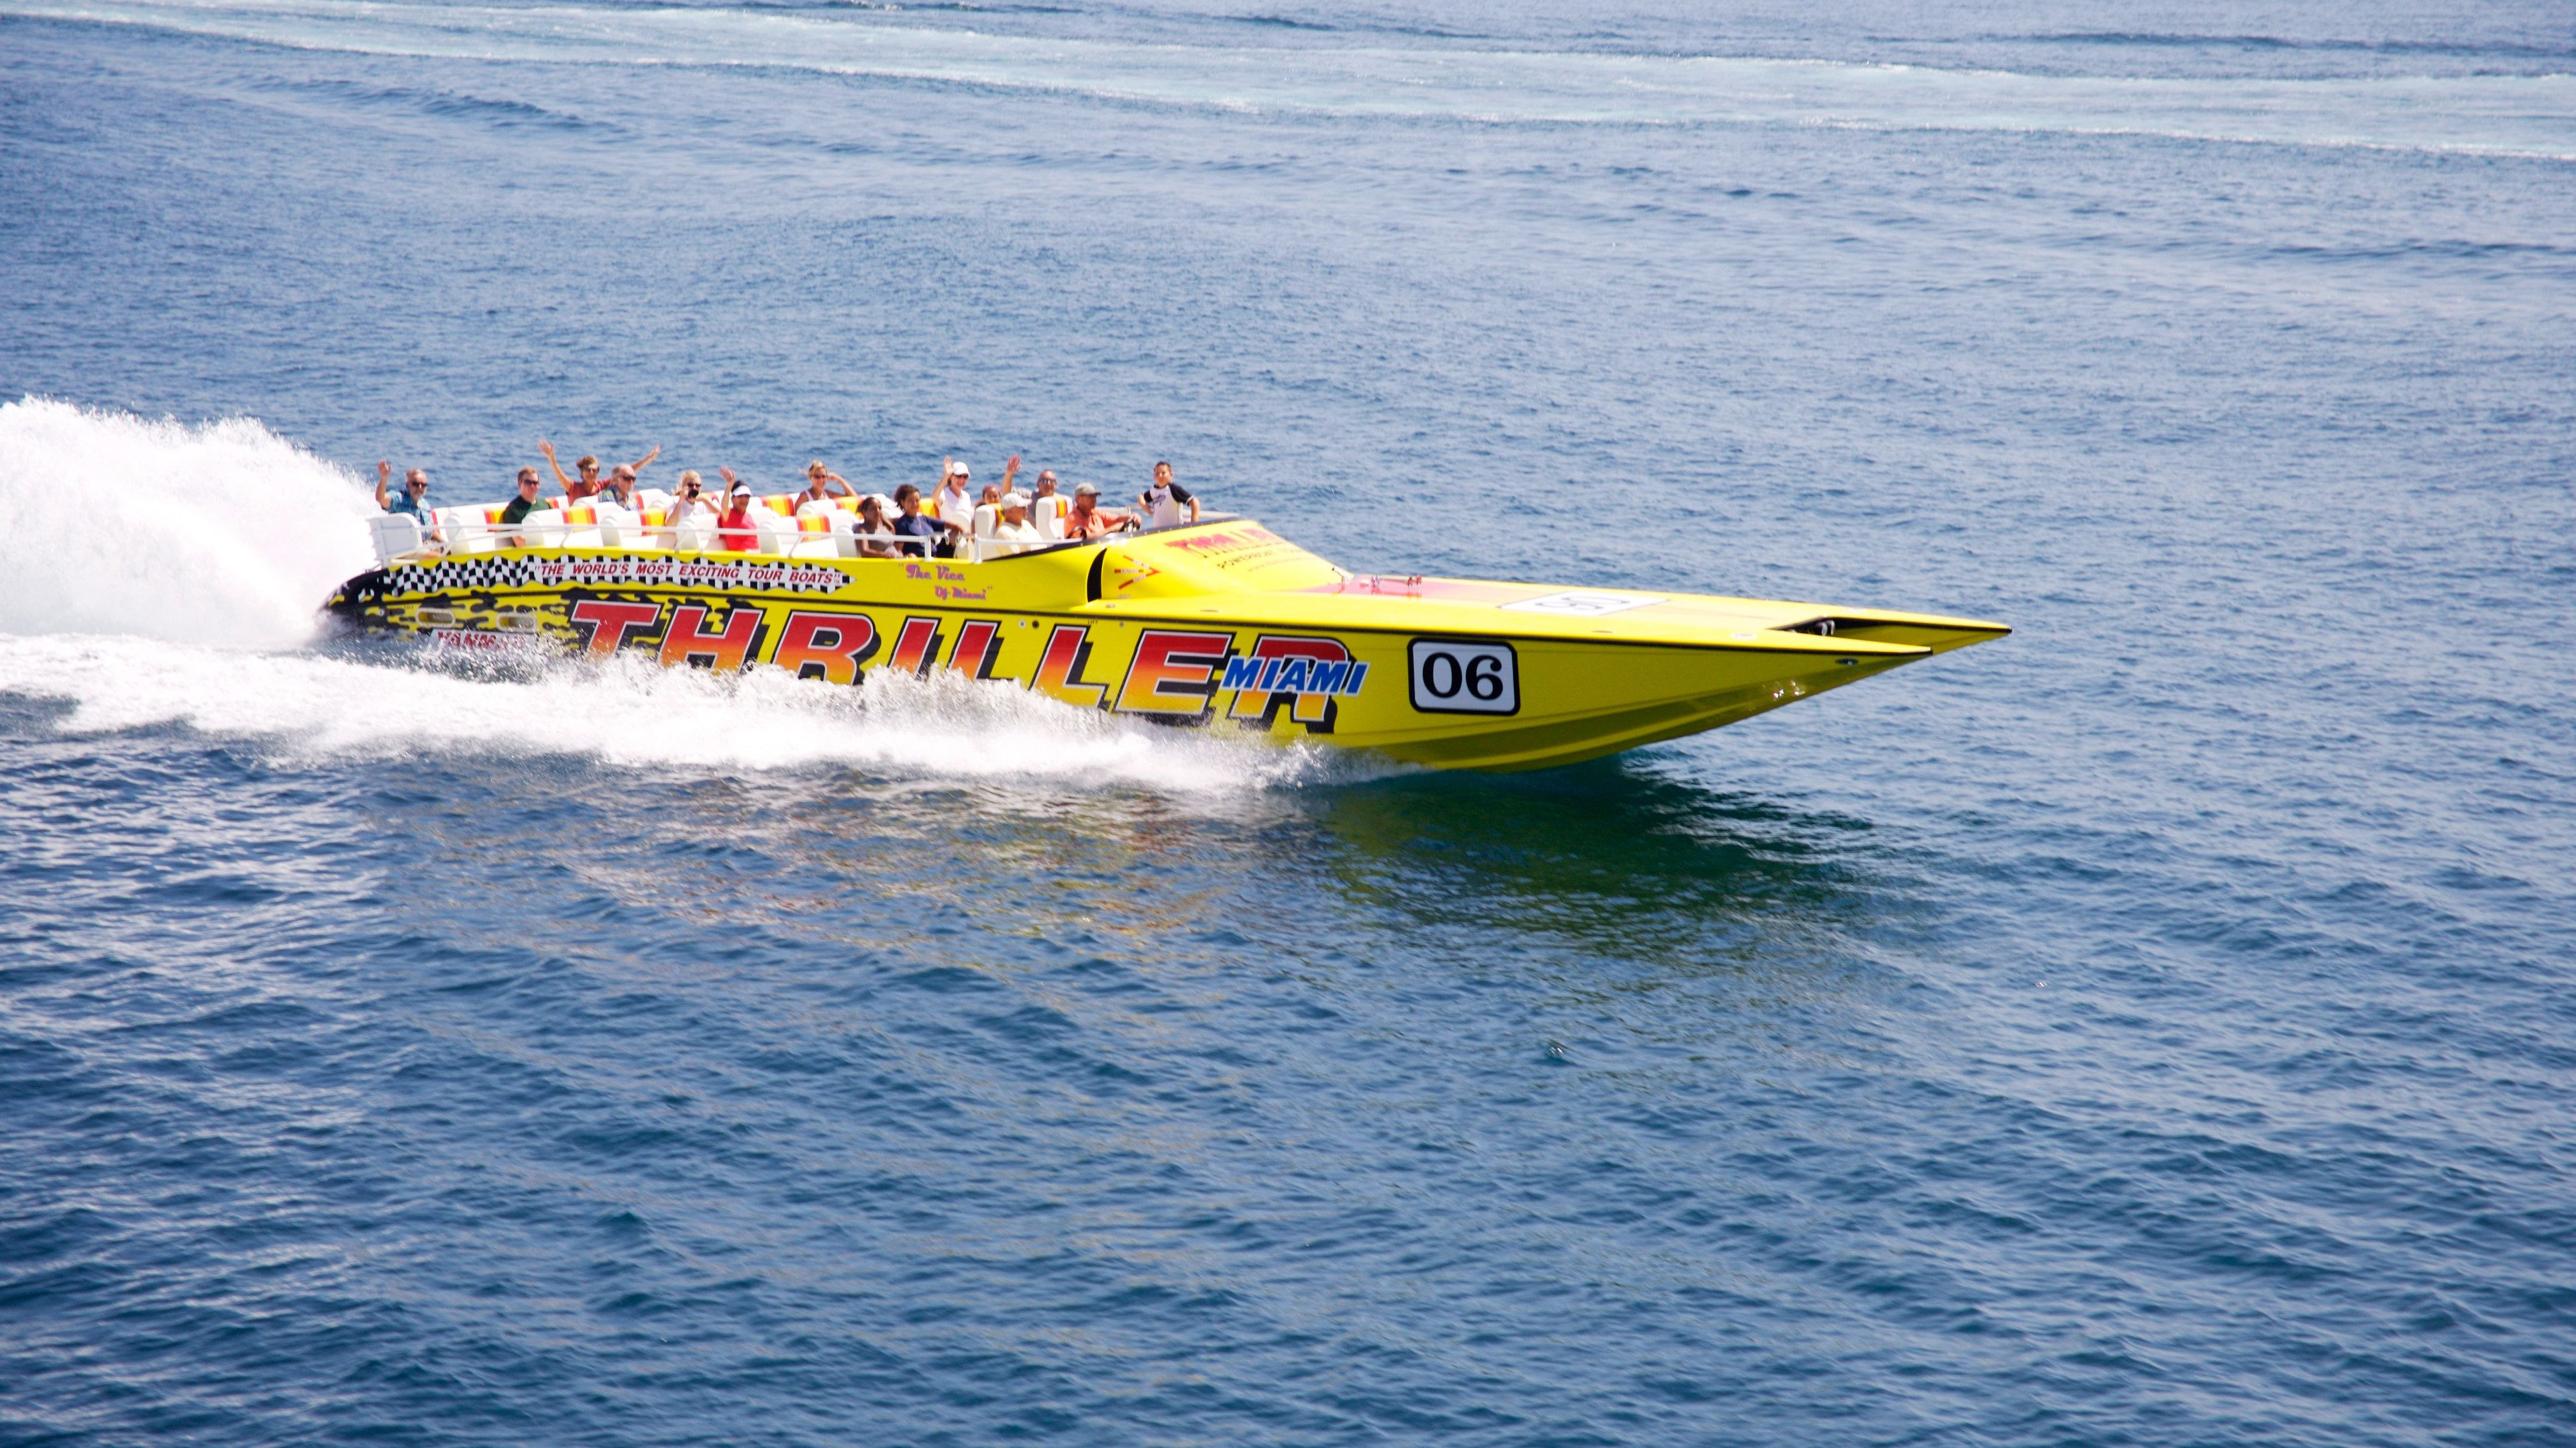 High angle shot of yellow Thriller speedboat cruising off the coast of Miami